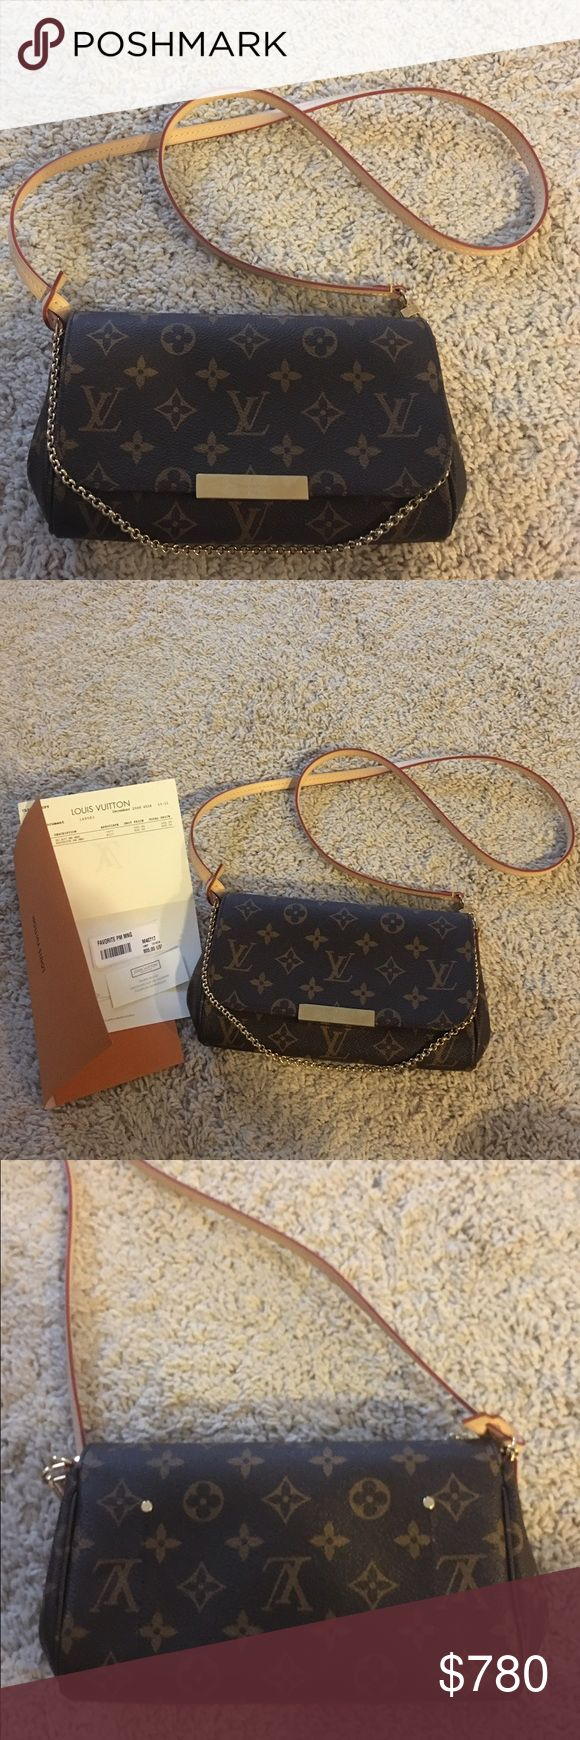 ✨Louis Vuitton bag sale ✨ 100% Authentic, never used before.                      Very clean ❤️ perfect condition 👍🏻 dust bag No any damage. Louis Vuitton Bags Crossbody Bags